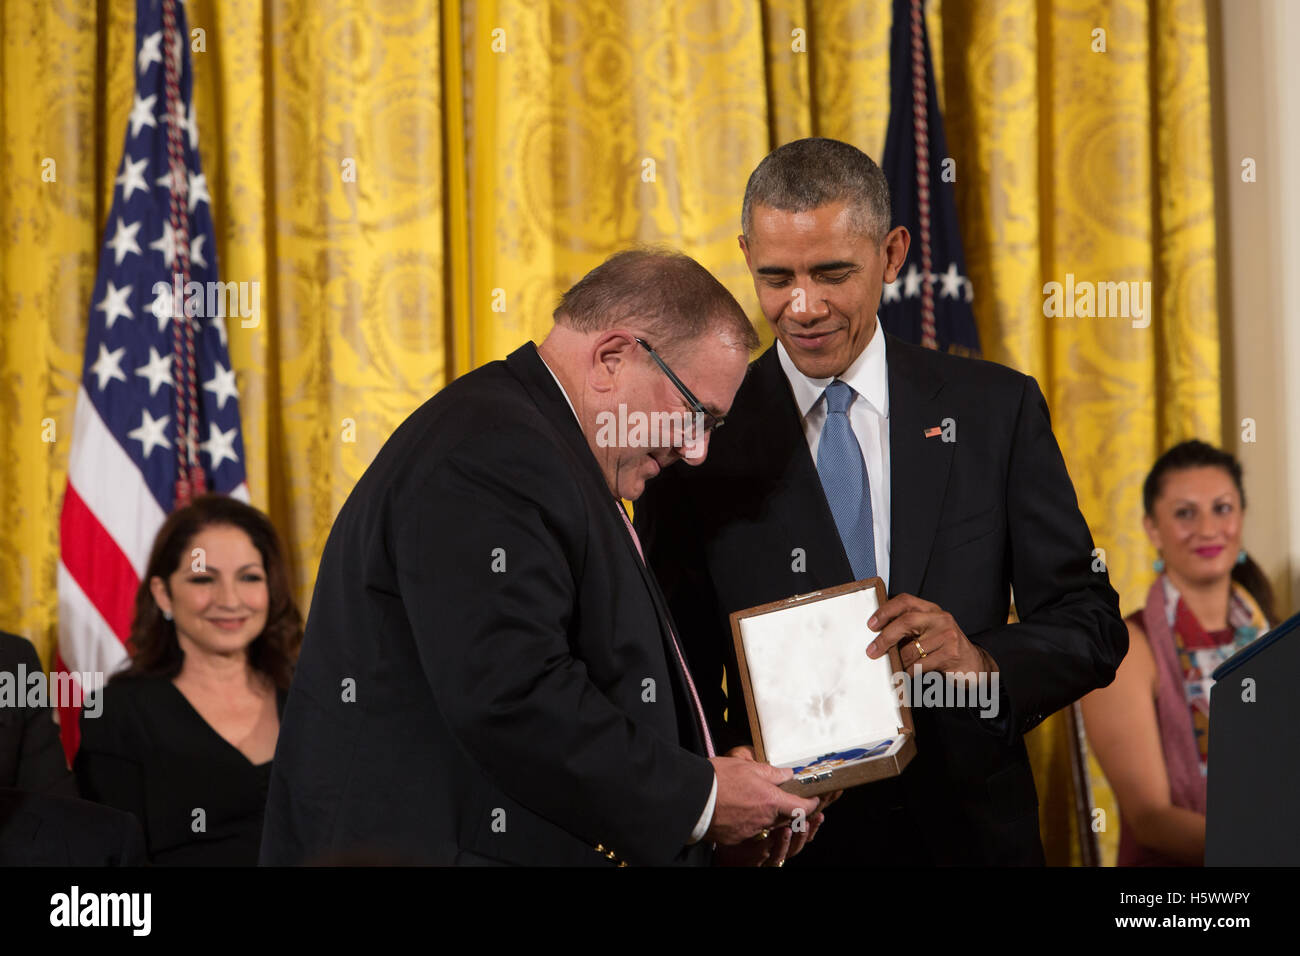 Yogi Berra (posthumous) receives the Presidential Medal of Freedom Awards from President Obama at the White House Stock Photo